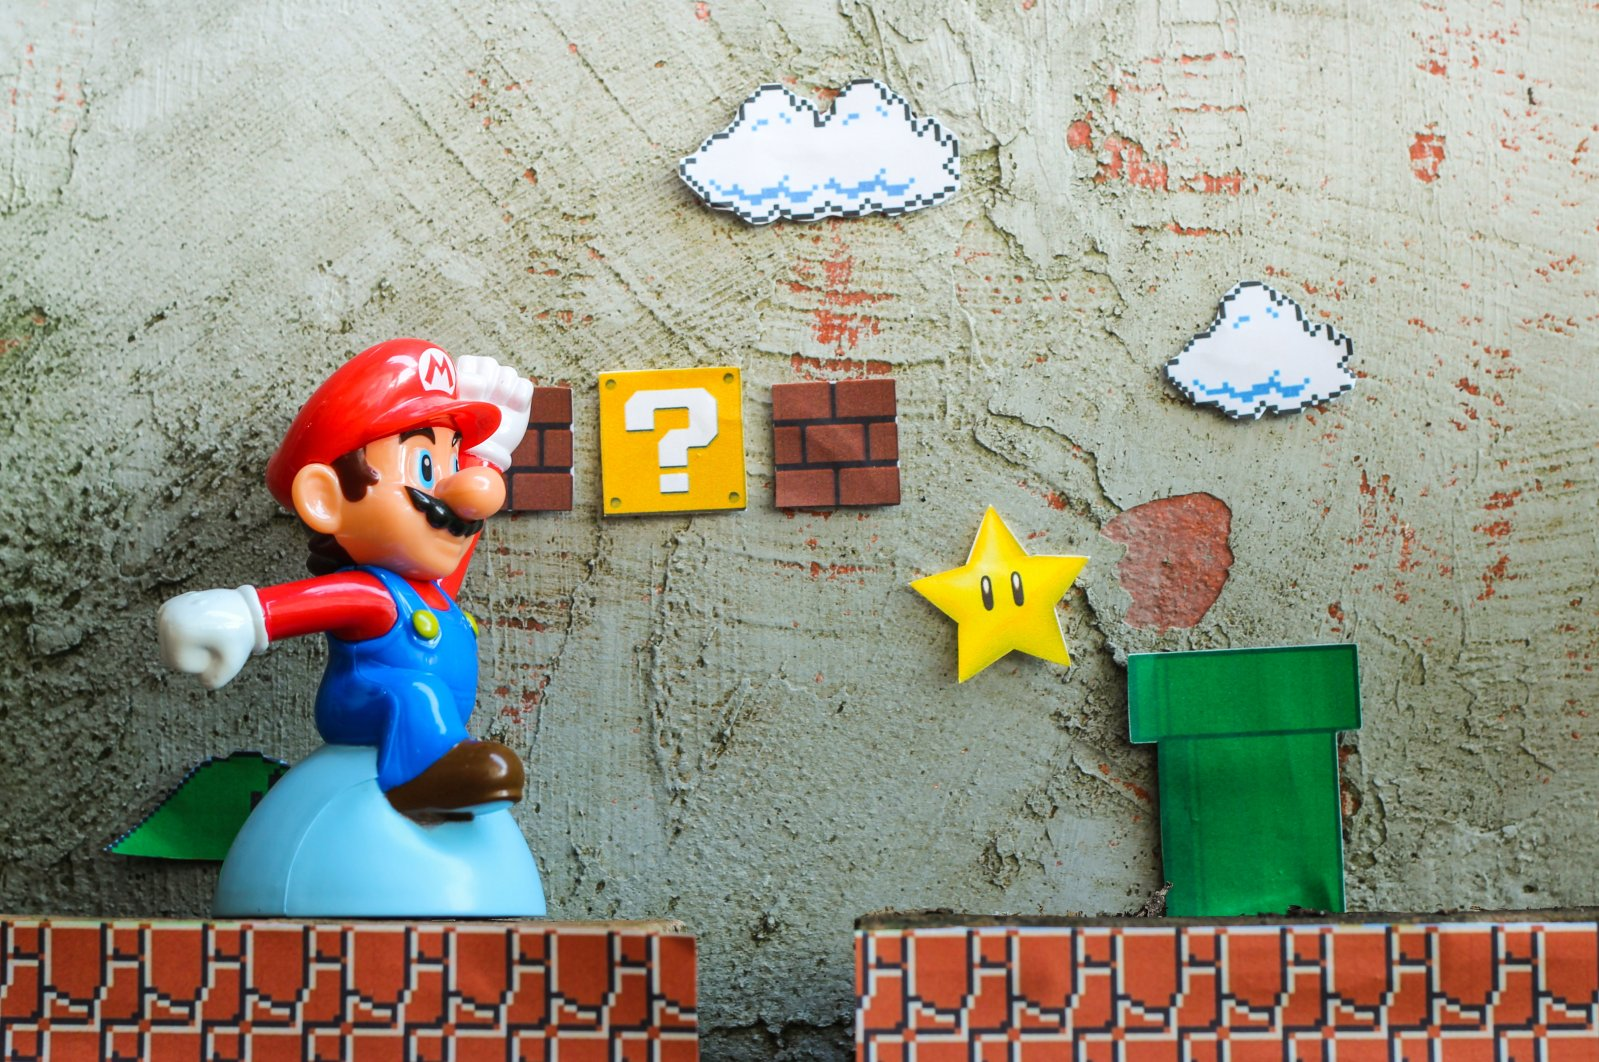 A 25-year-old Super Mario 64 video game from 1996 set a new record after netting $1.56 million at a weekend auction. (Shutterstock Photo)